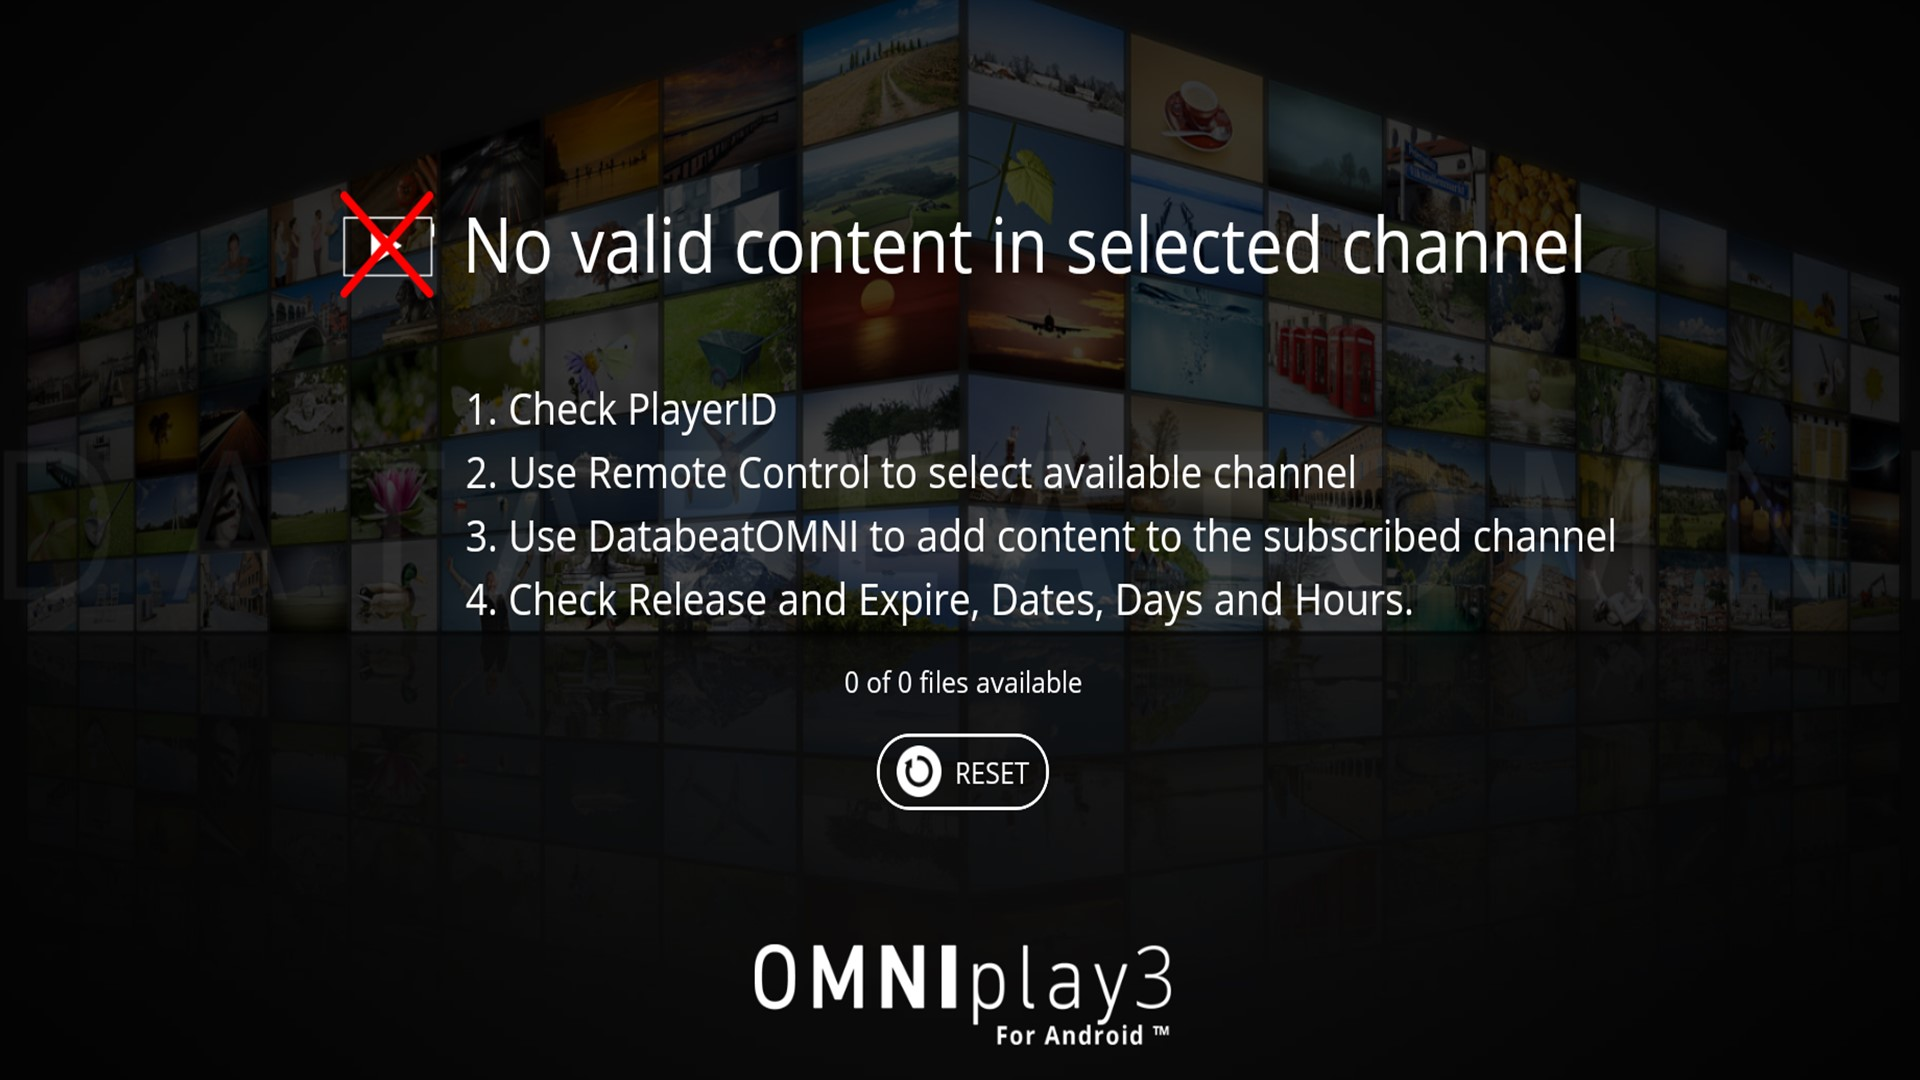 No valid content in selected channel